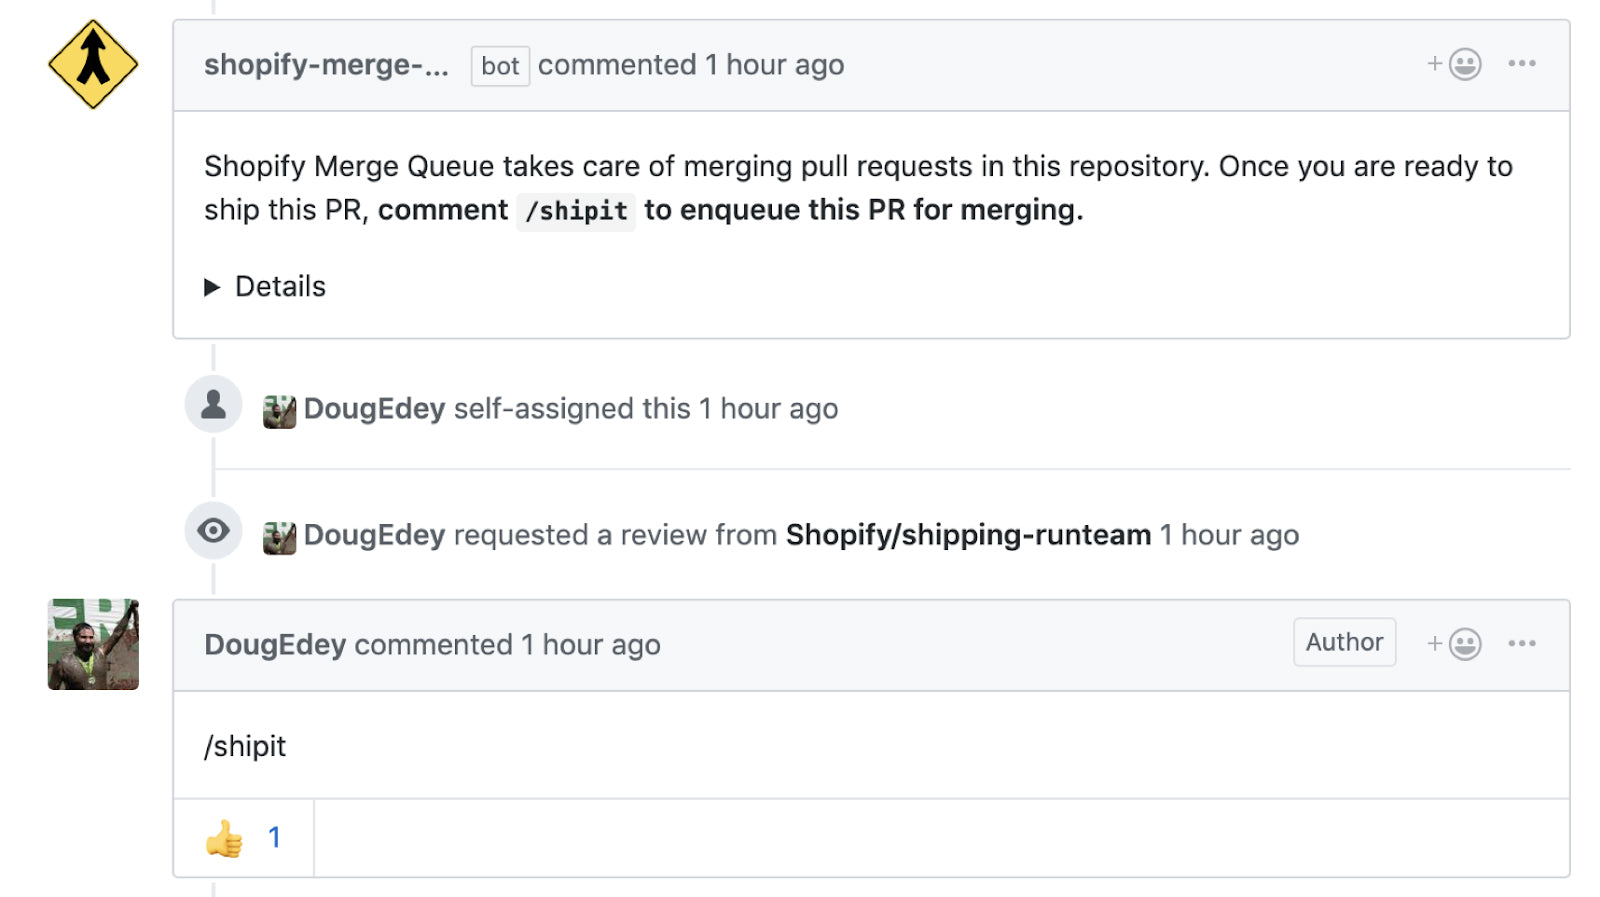 Merge Queue v2 went with a comment-based interface